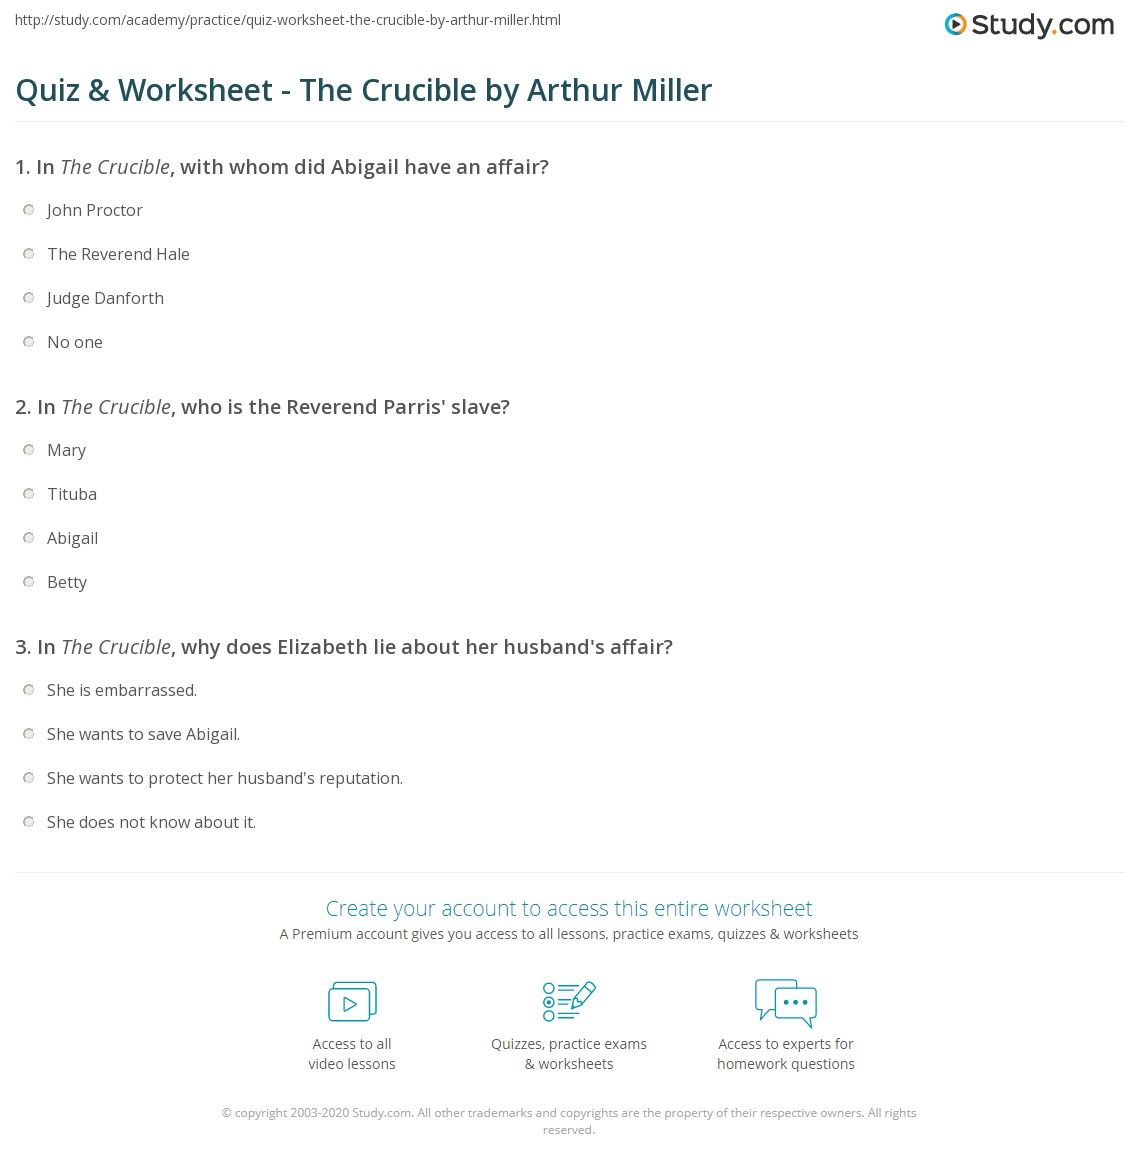 quiz worksheet the crucible by arthur miller com print the crucible by arthur miller characters themes analysis worksheet